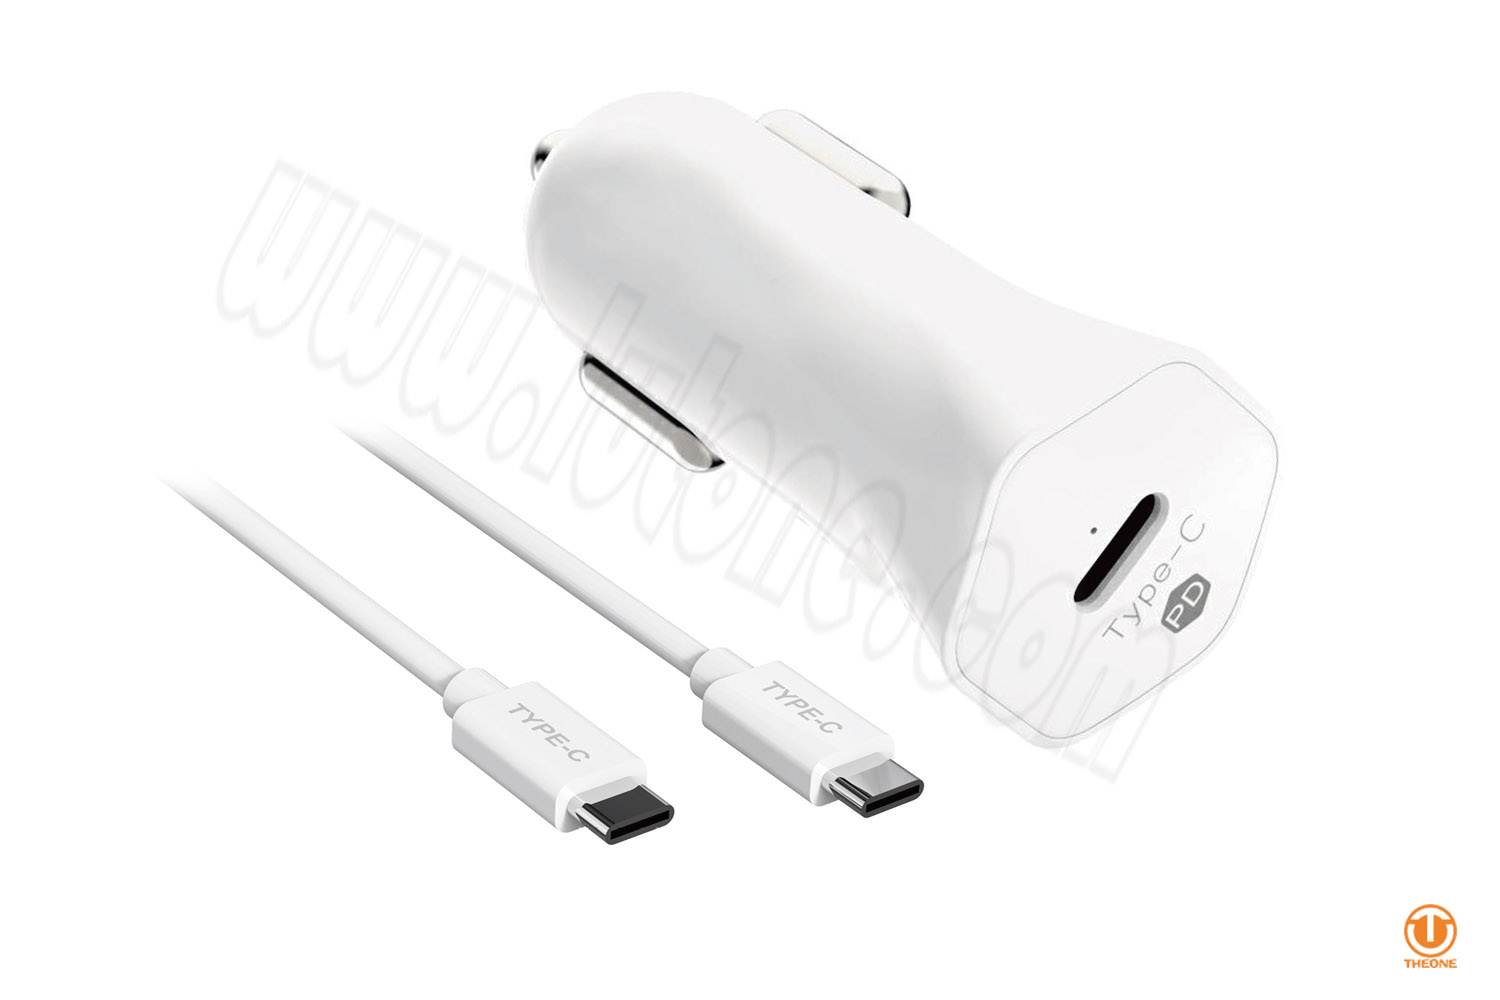 30w usb-c power delivery